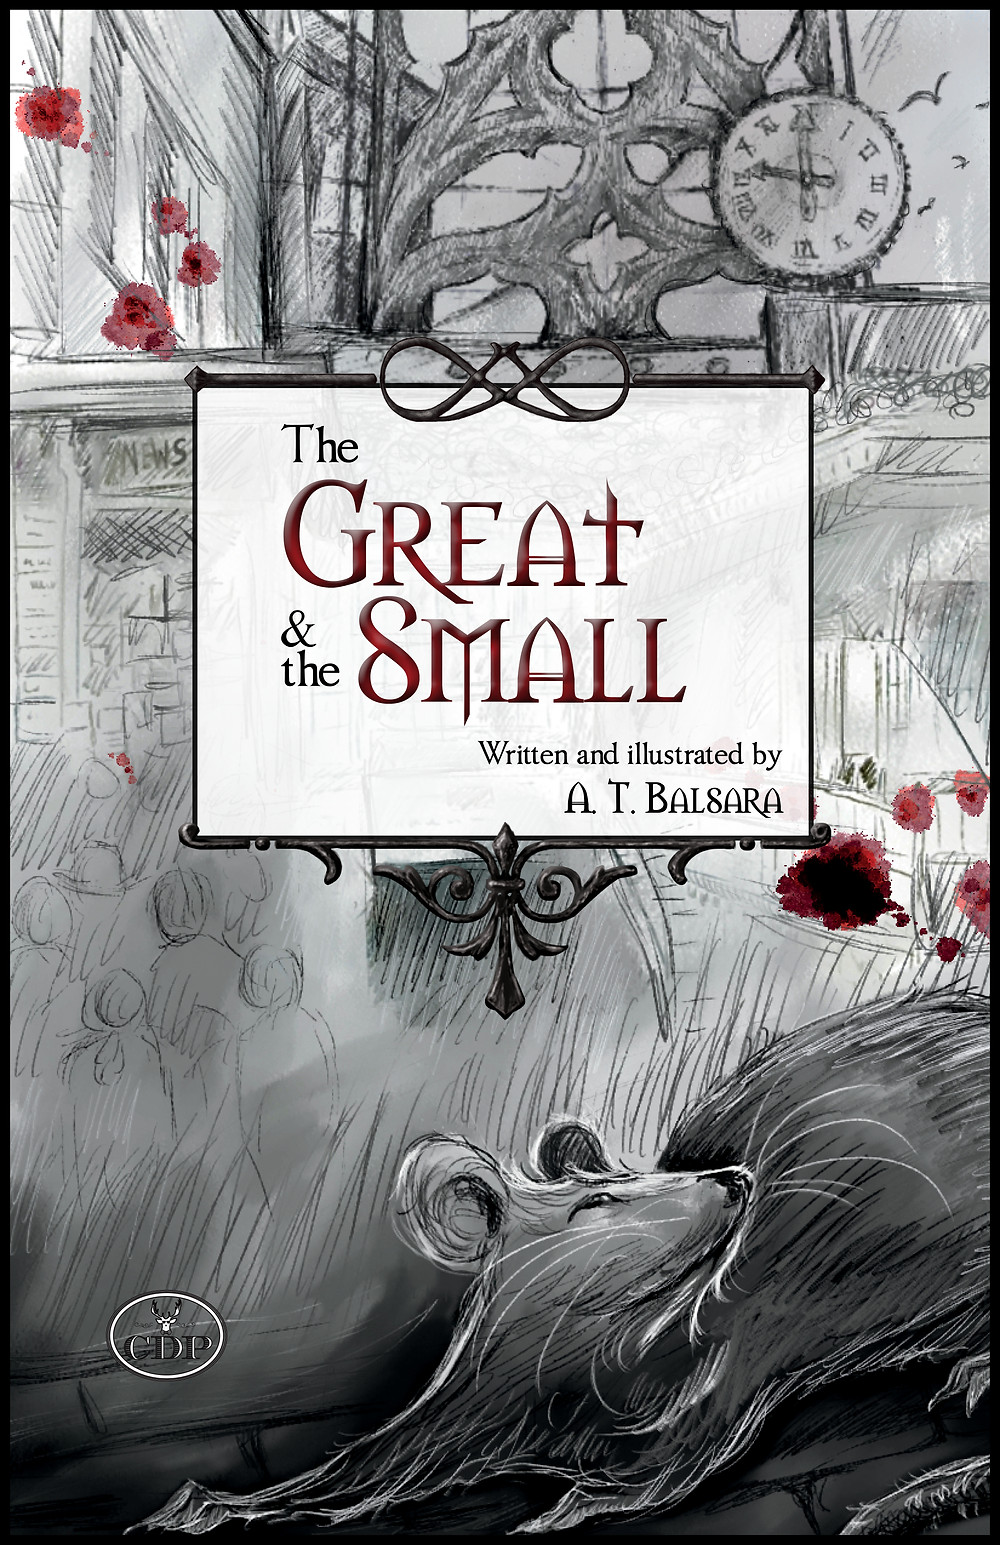 The Great & the Small by A.T. Balsara